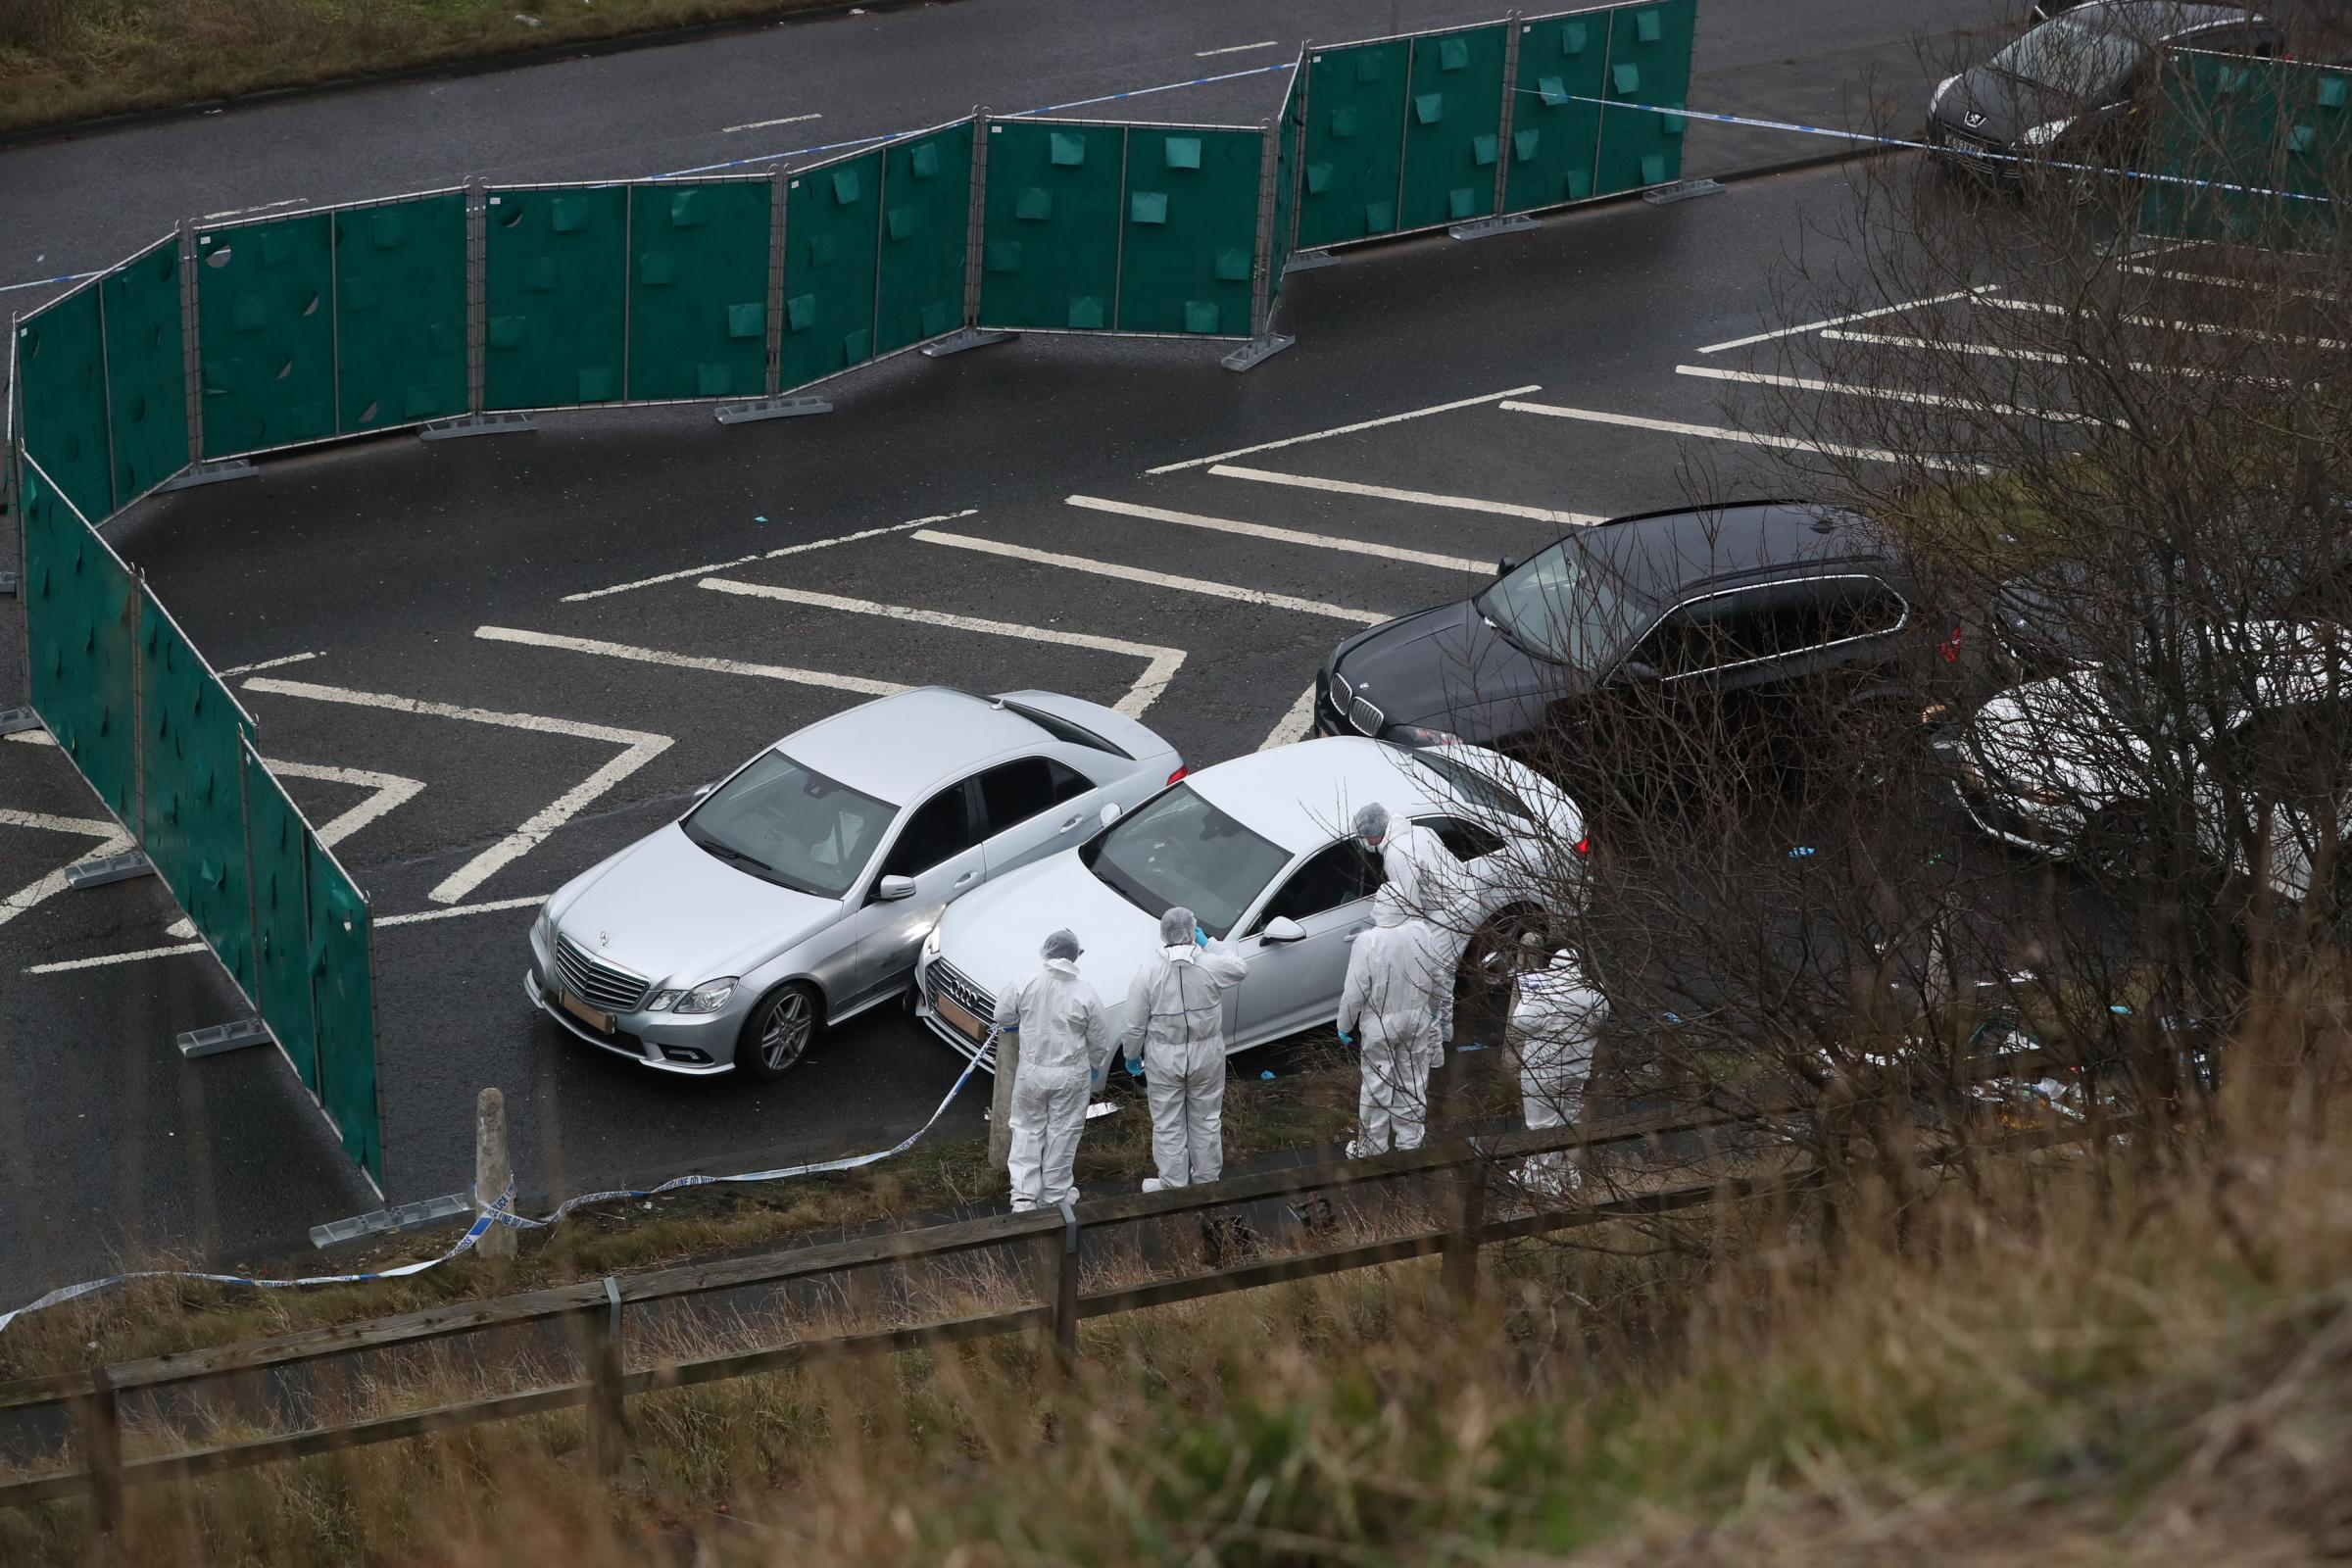 Police forensics officers examine a silver Audi with bullet holes in its windscreen at the scene near junction J24 of the M62 in Huddersfield